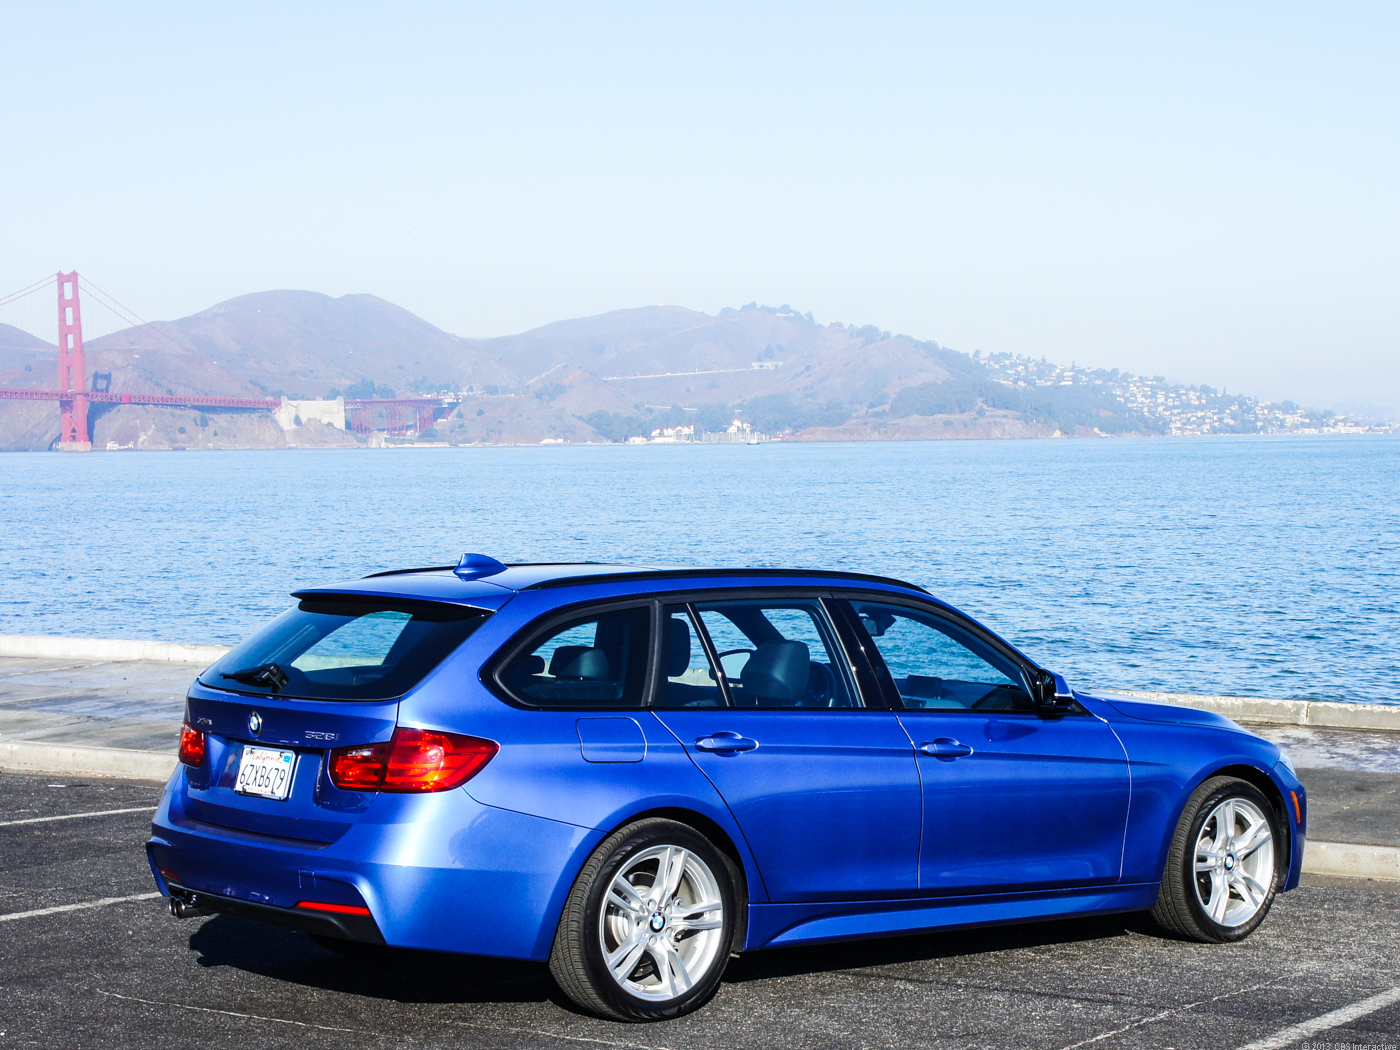 2014 bmw 328i xdrive sports wagon review cnet. Black Bedroom Furniture Sets. Home Design Ideas